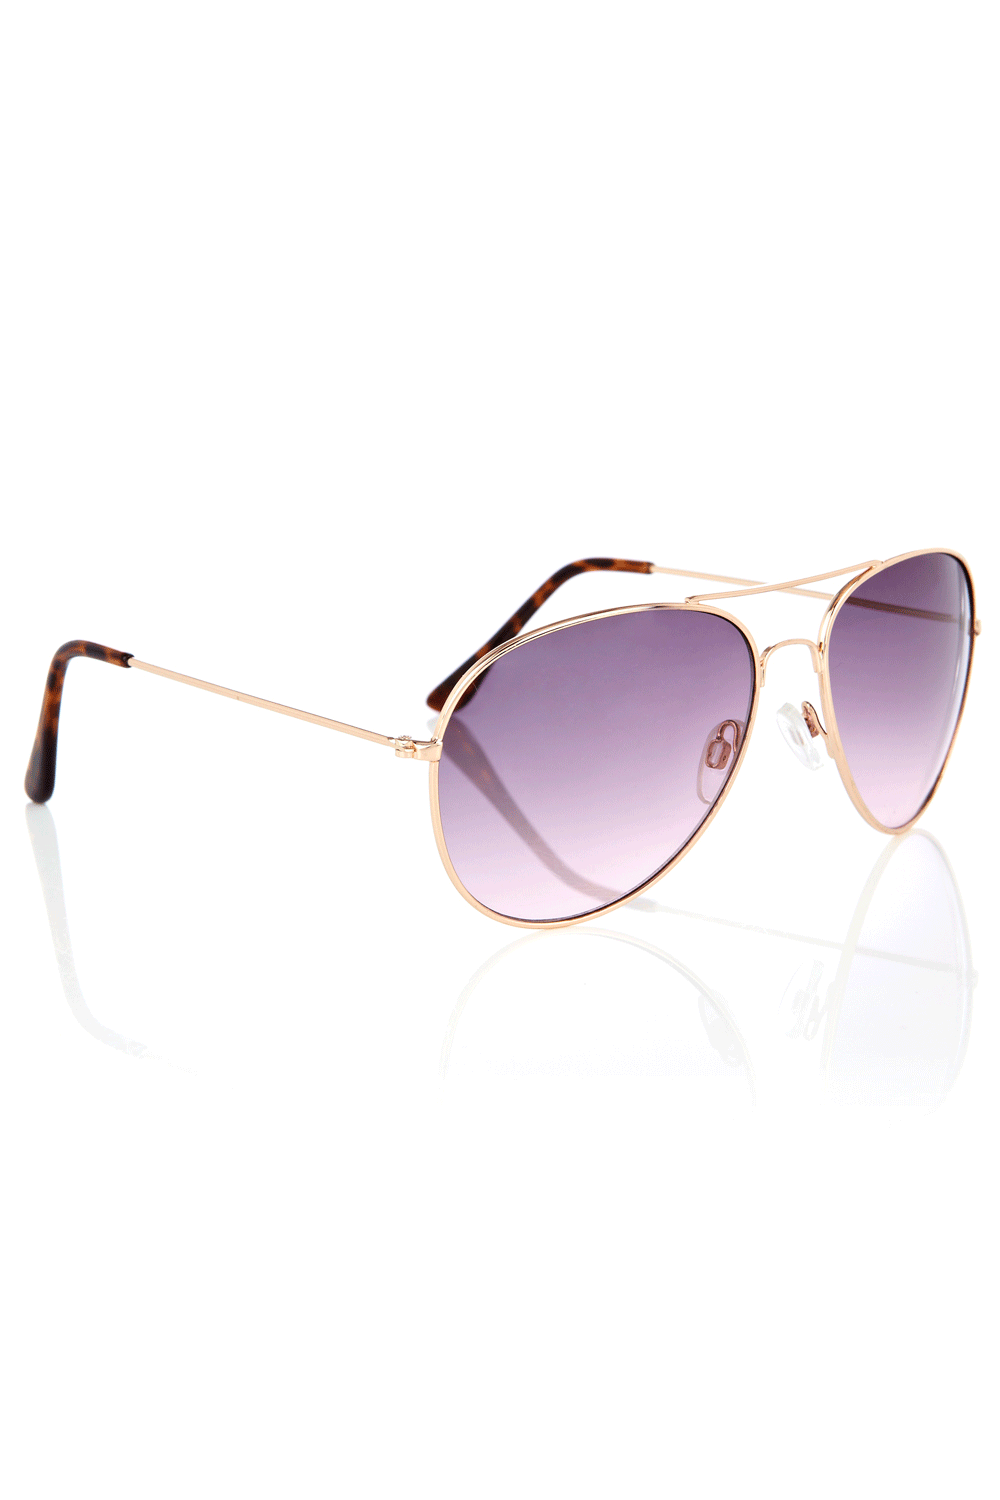 Basic Aviator Sunglasses - predominant colour: gold; style: aviator; size: standard; material: chain/metal; pattern: plain, tortoiseshell, two-tone